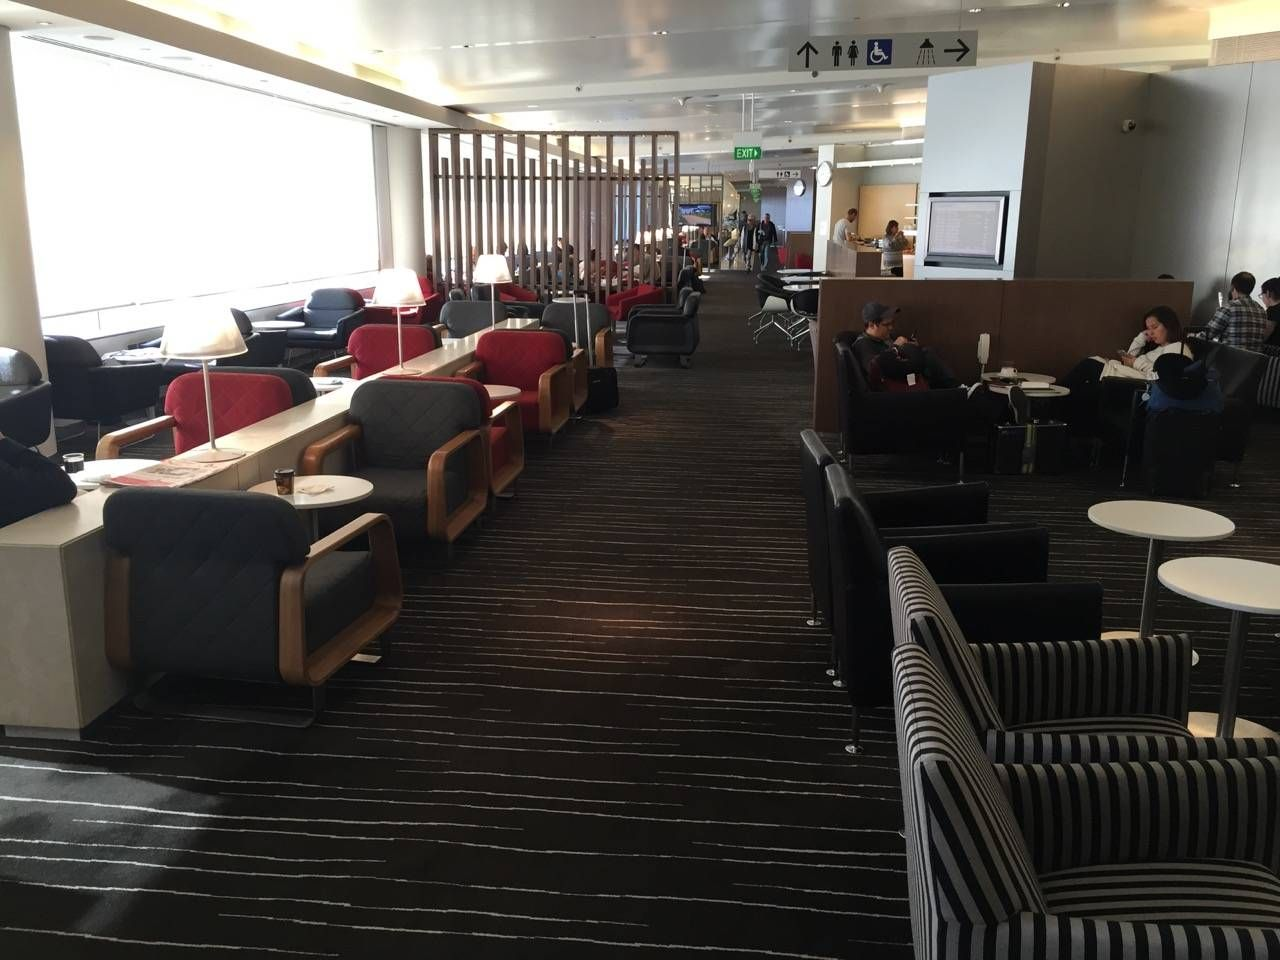 Qantas Business Lounge Sydney -031